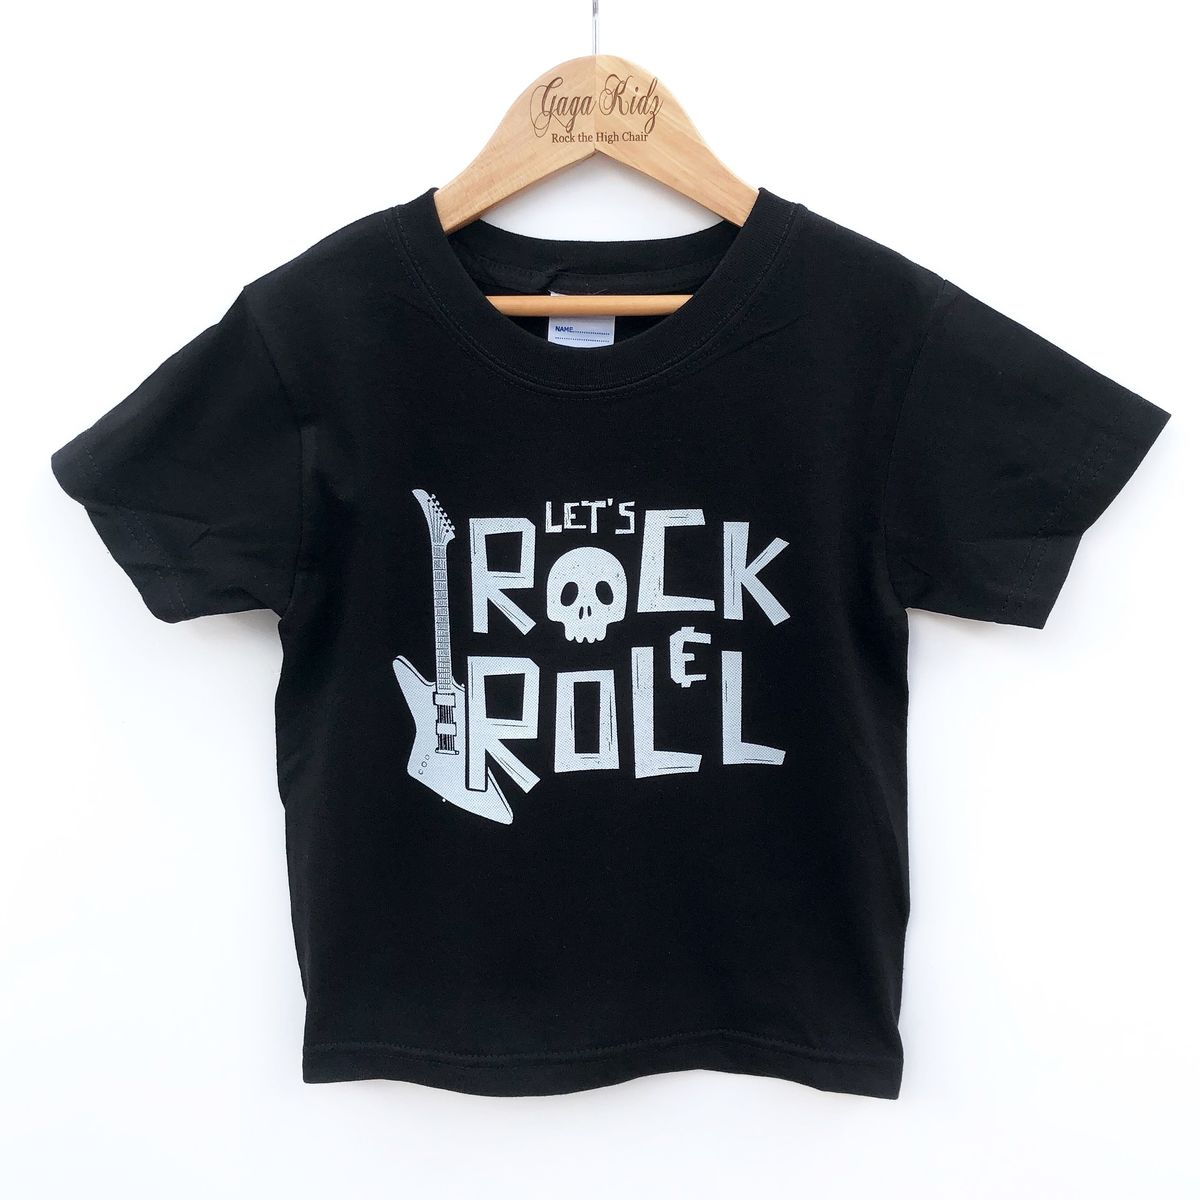 Let's Rock & Roll Black or White T-Shirt - product images  of